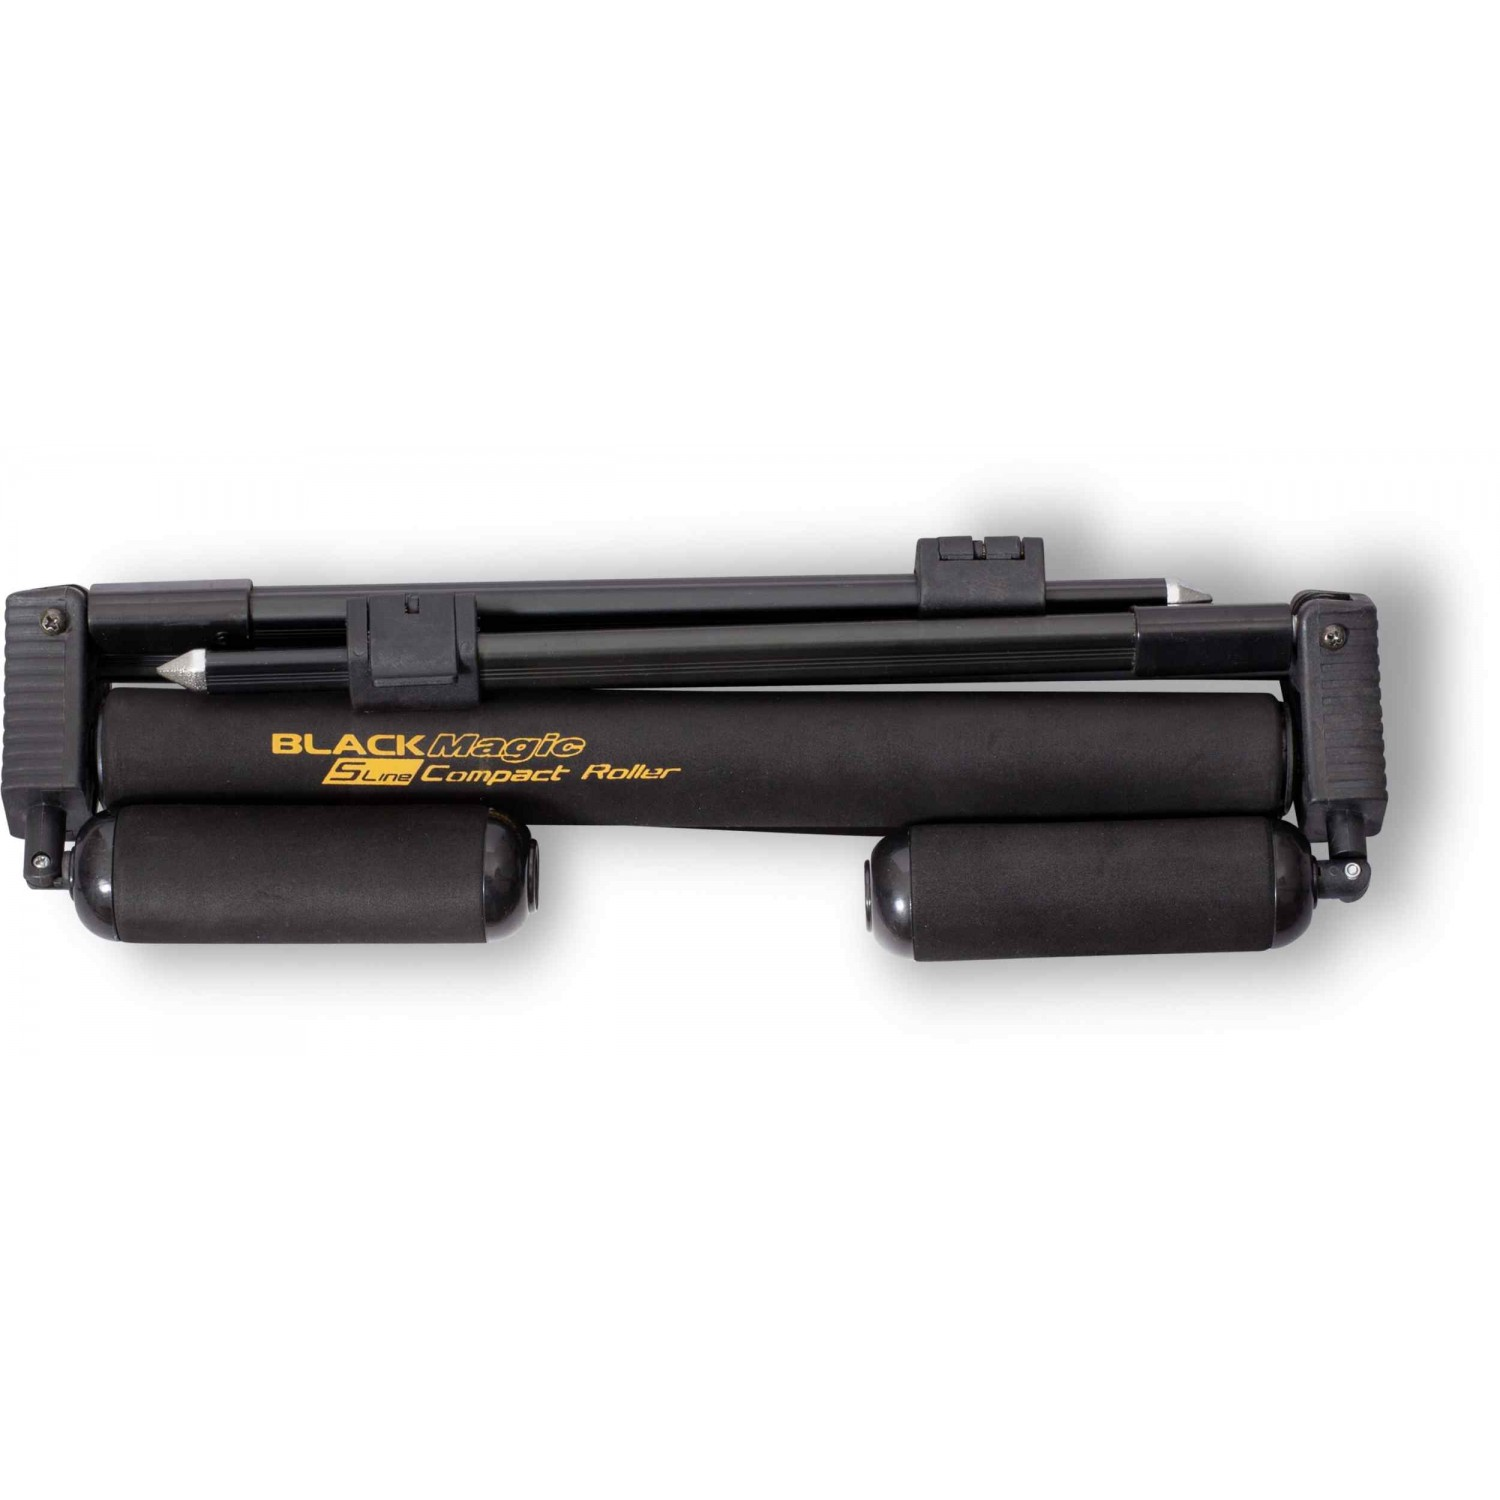 Browning Black Magic FB 35 S-Line Compact Roller